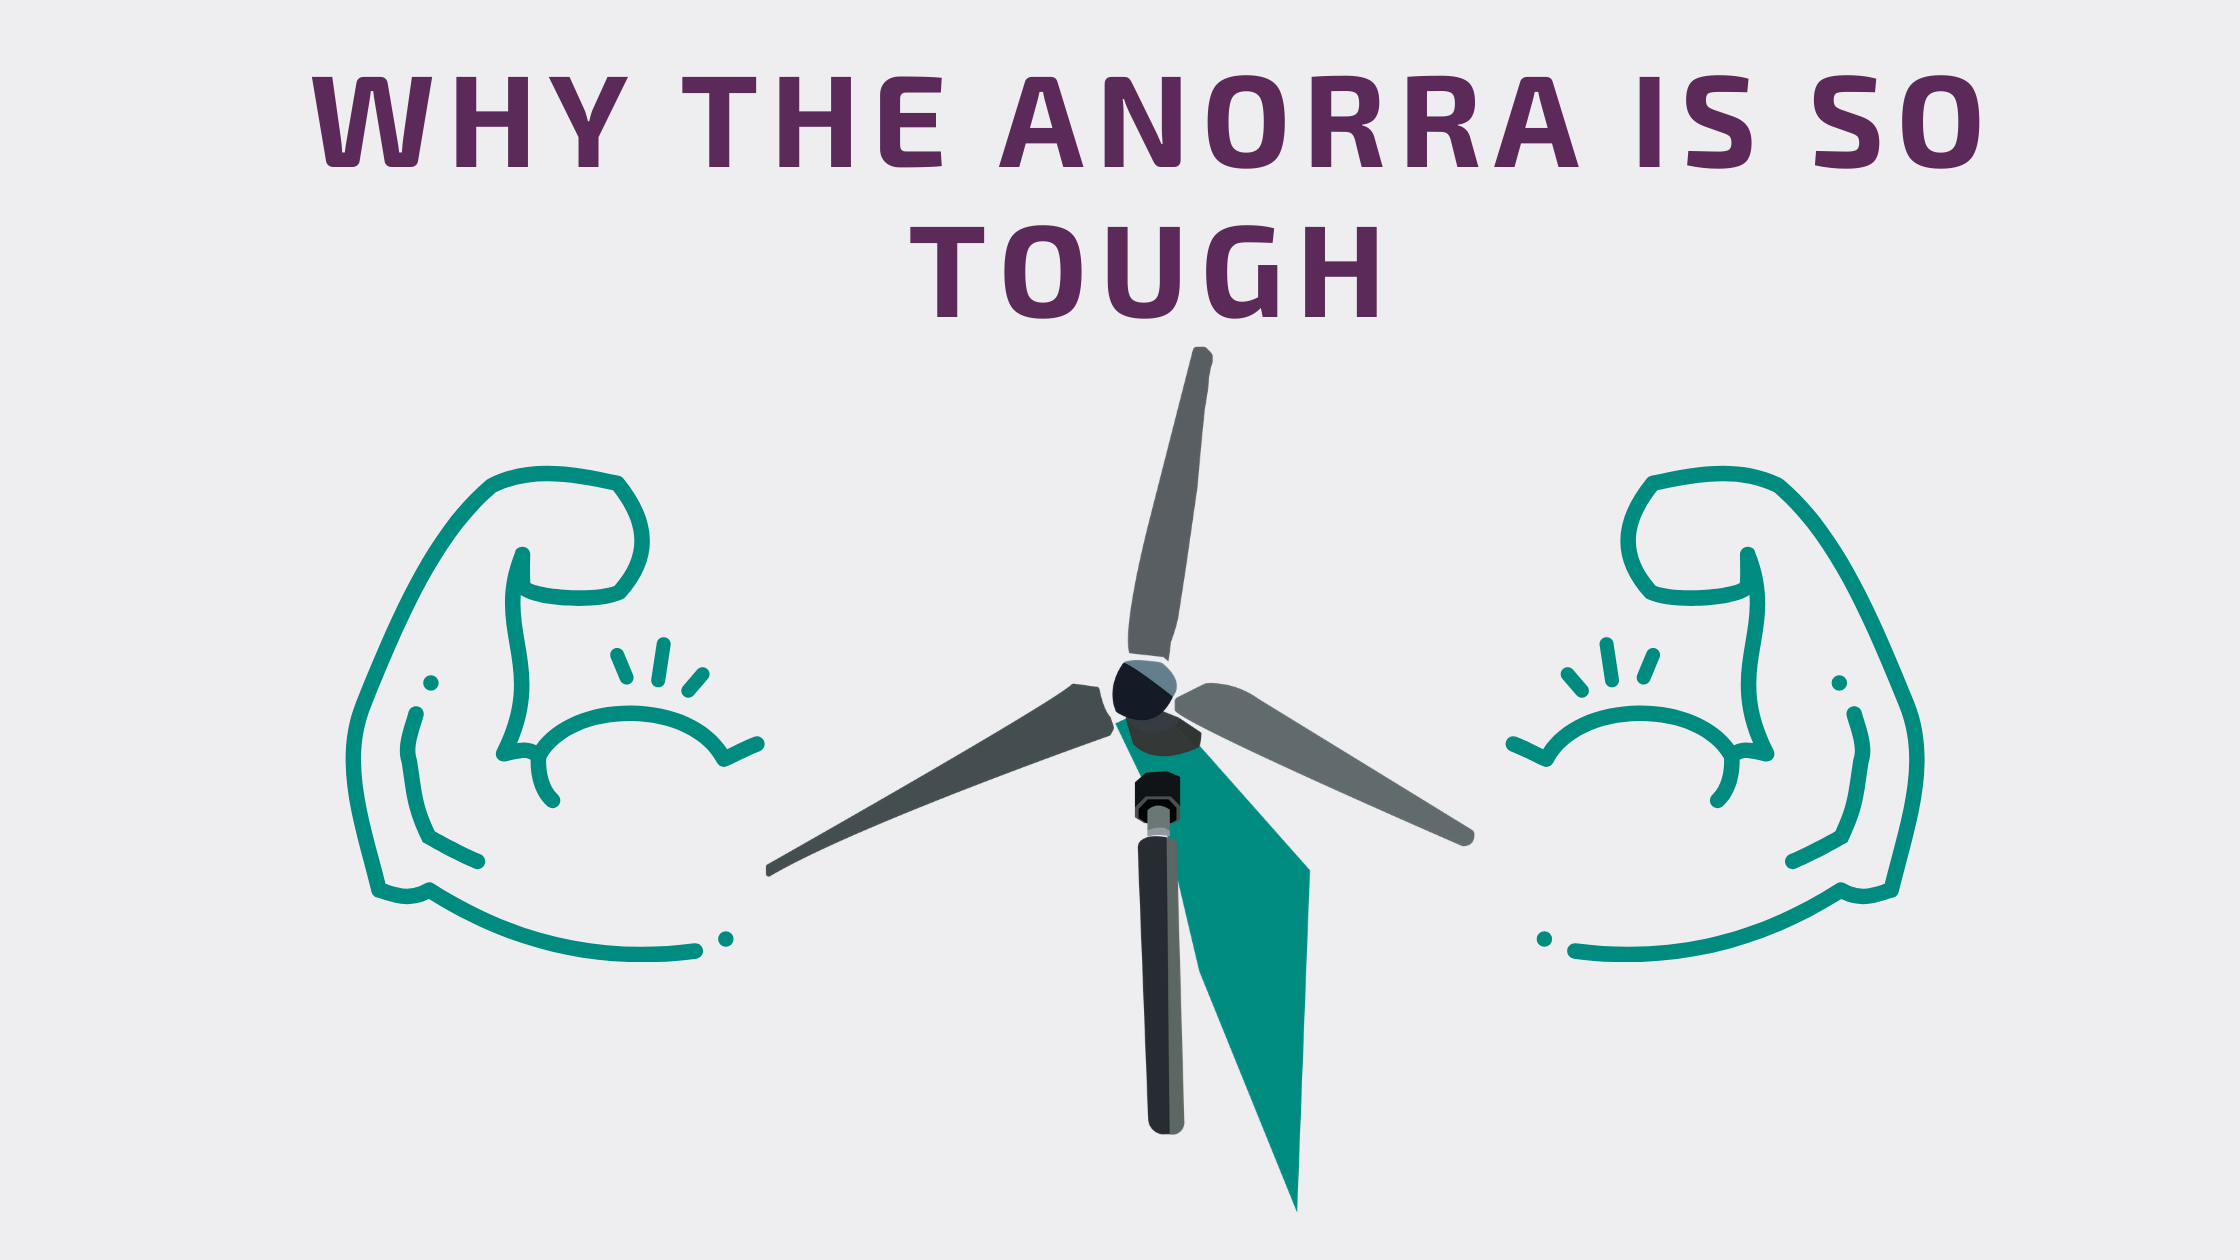 Why the Anorra is so Tough